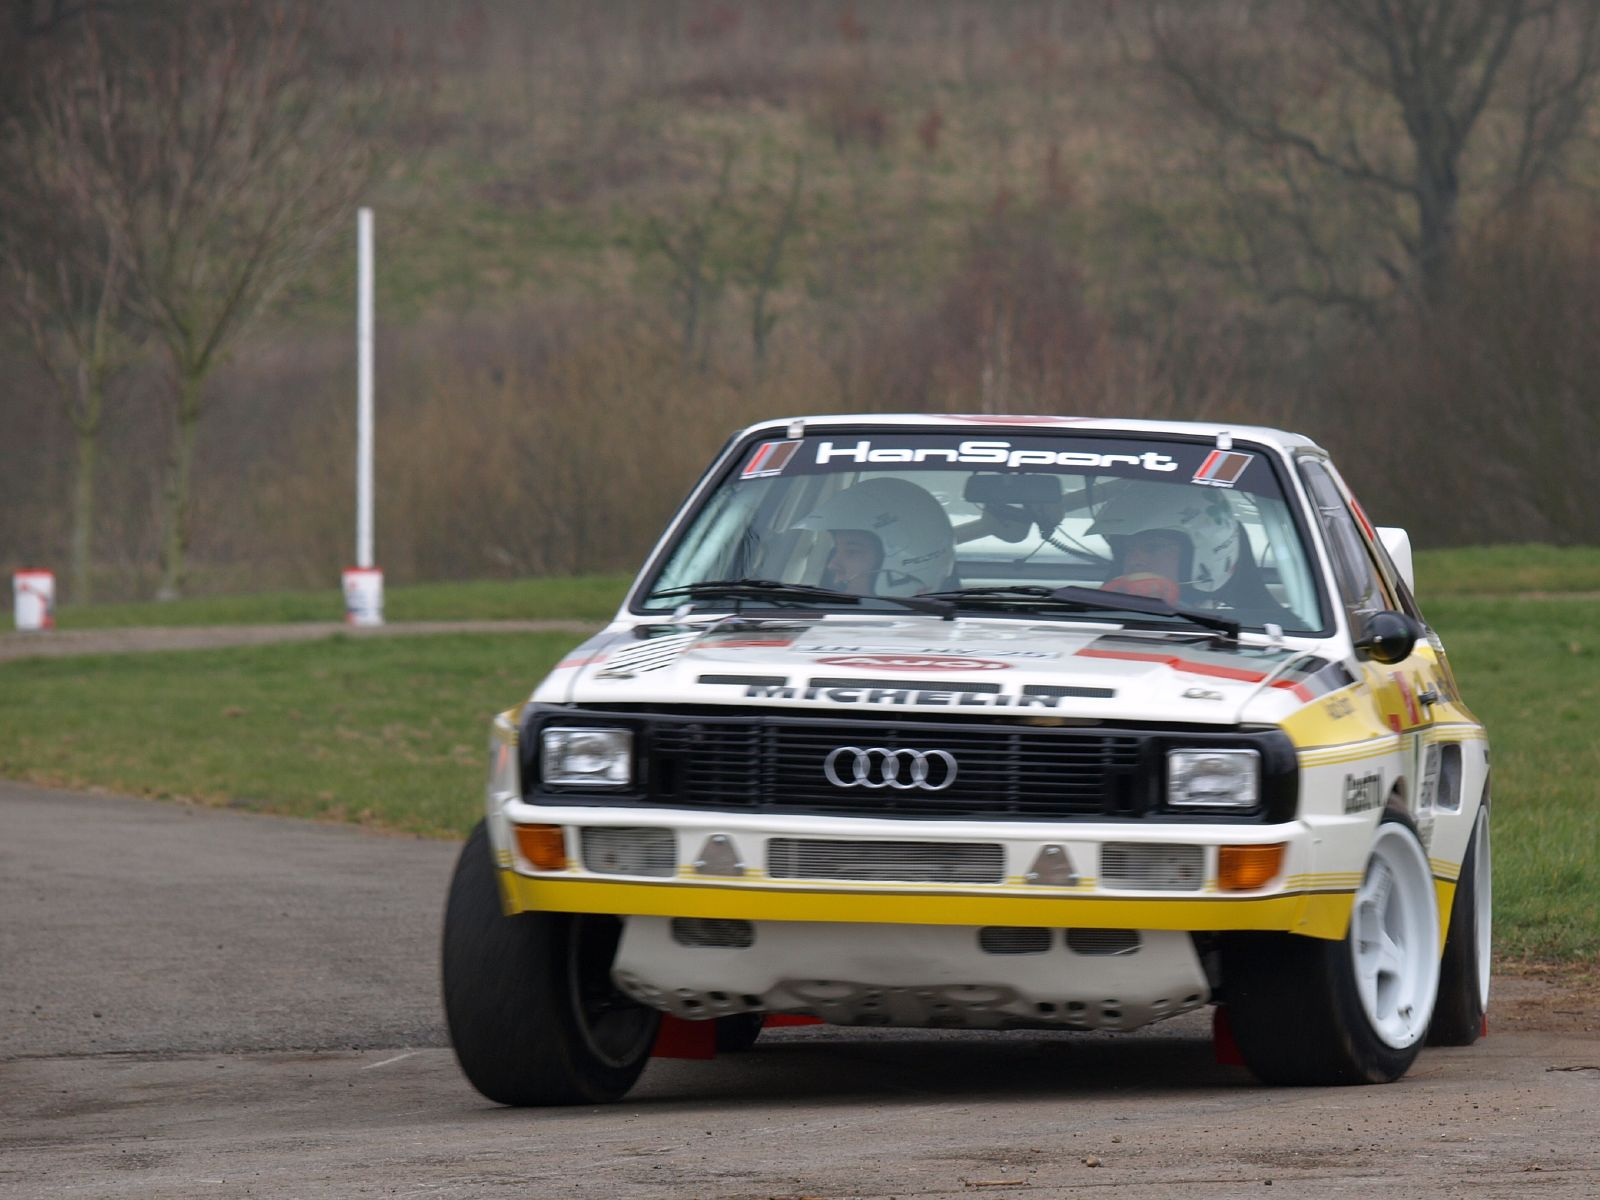 File:Audi Sport Quattro - Race Retro 2008 07.jpg - Wikimedia Commons